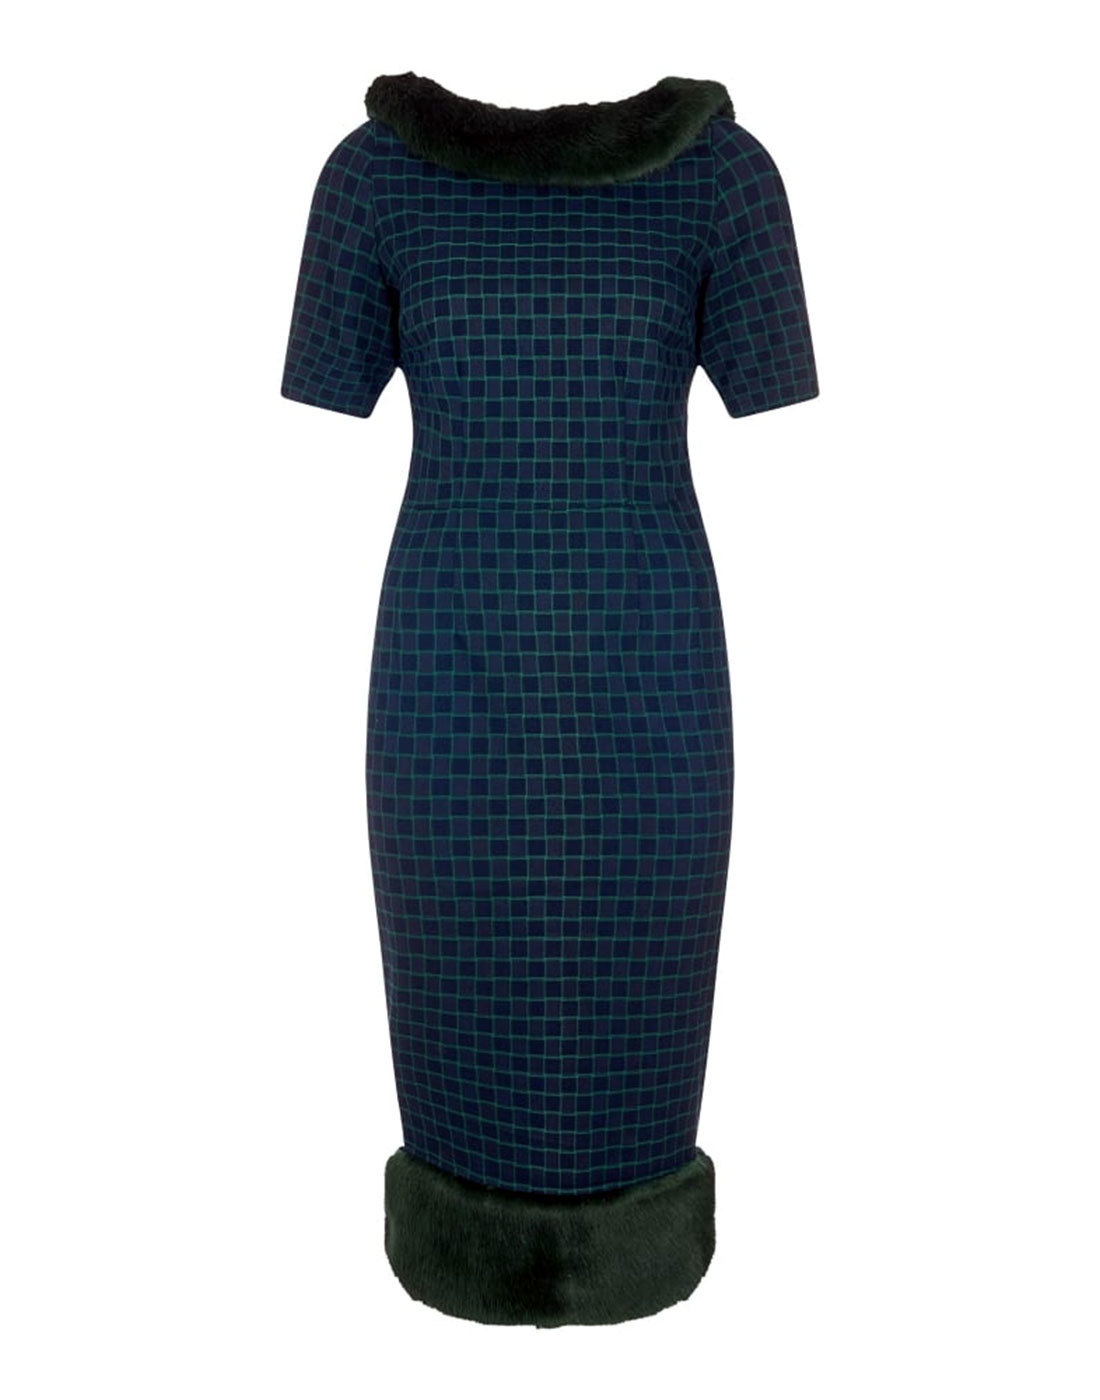 Juliette Chaise Check COLLECTIF 1950s Pencil Dress